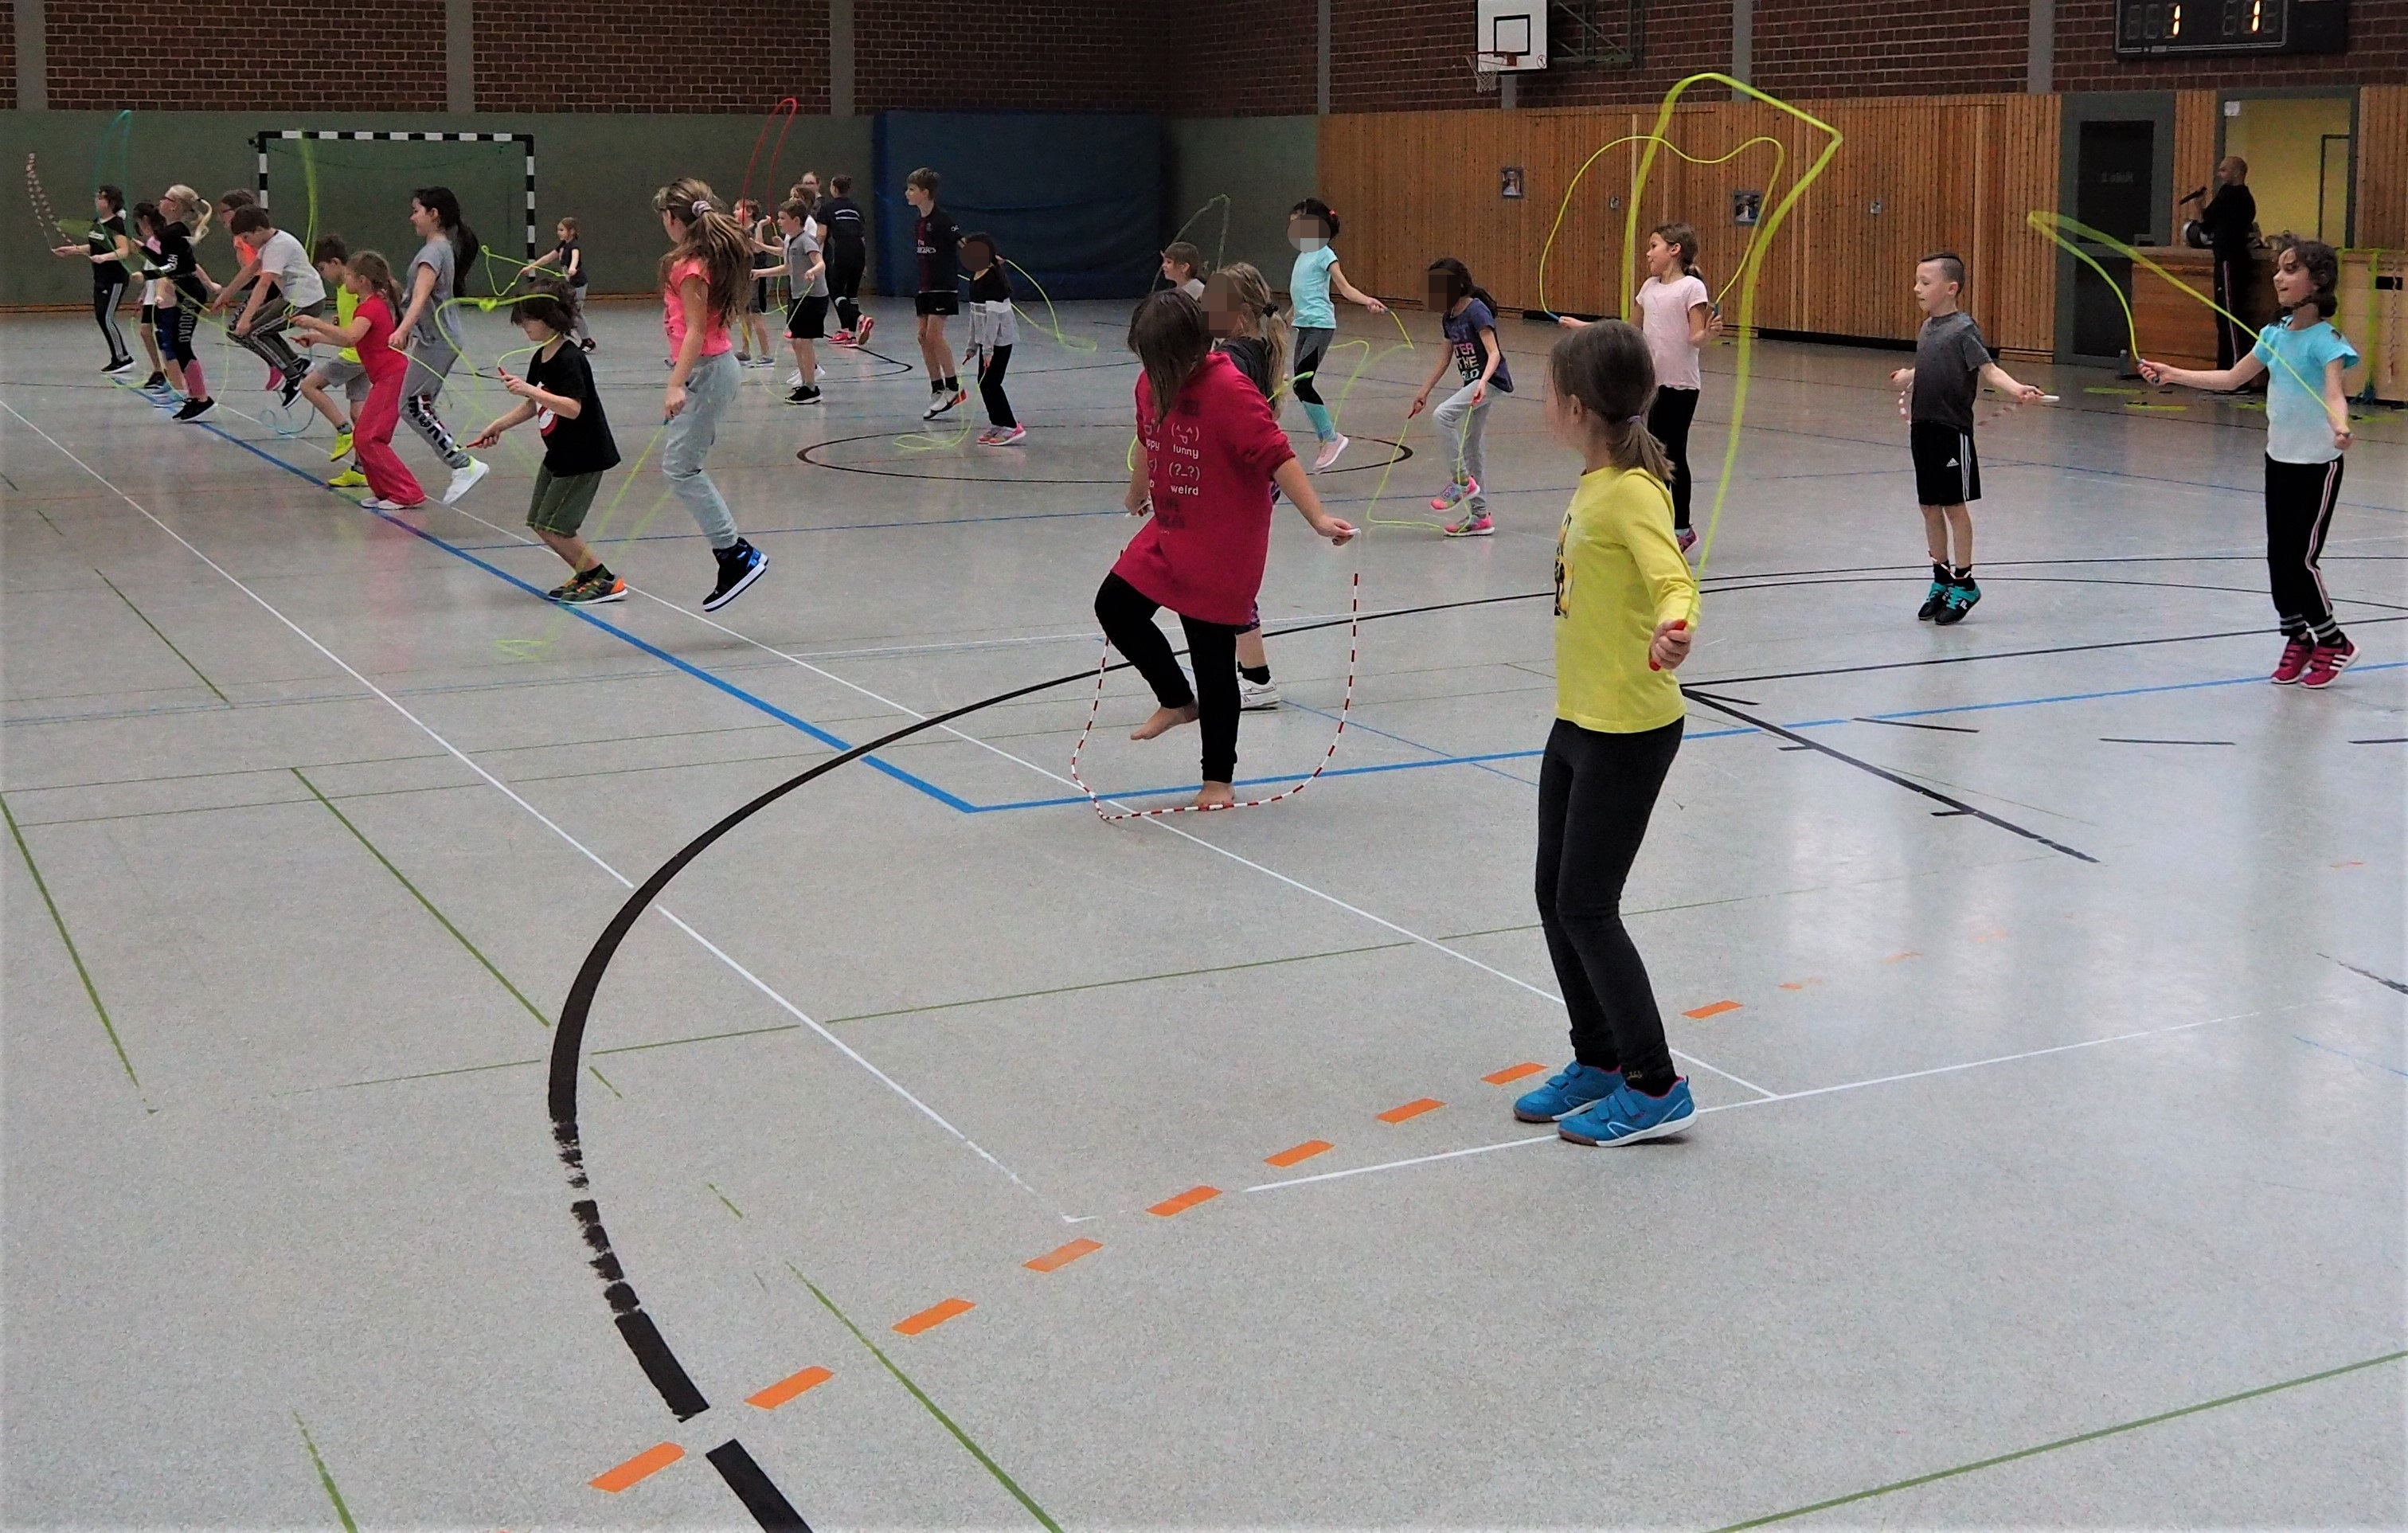 2020 01 30 Rope skipping GOBS NK2